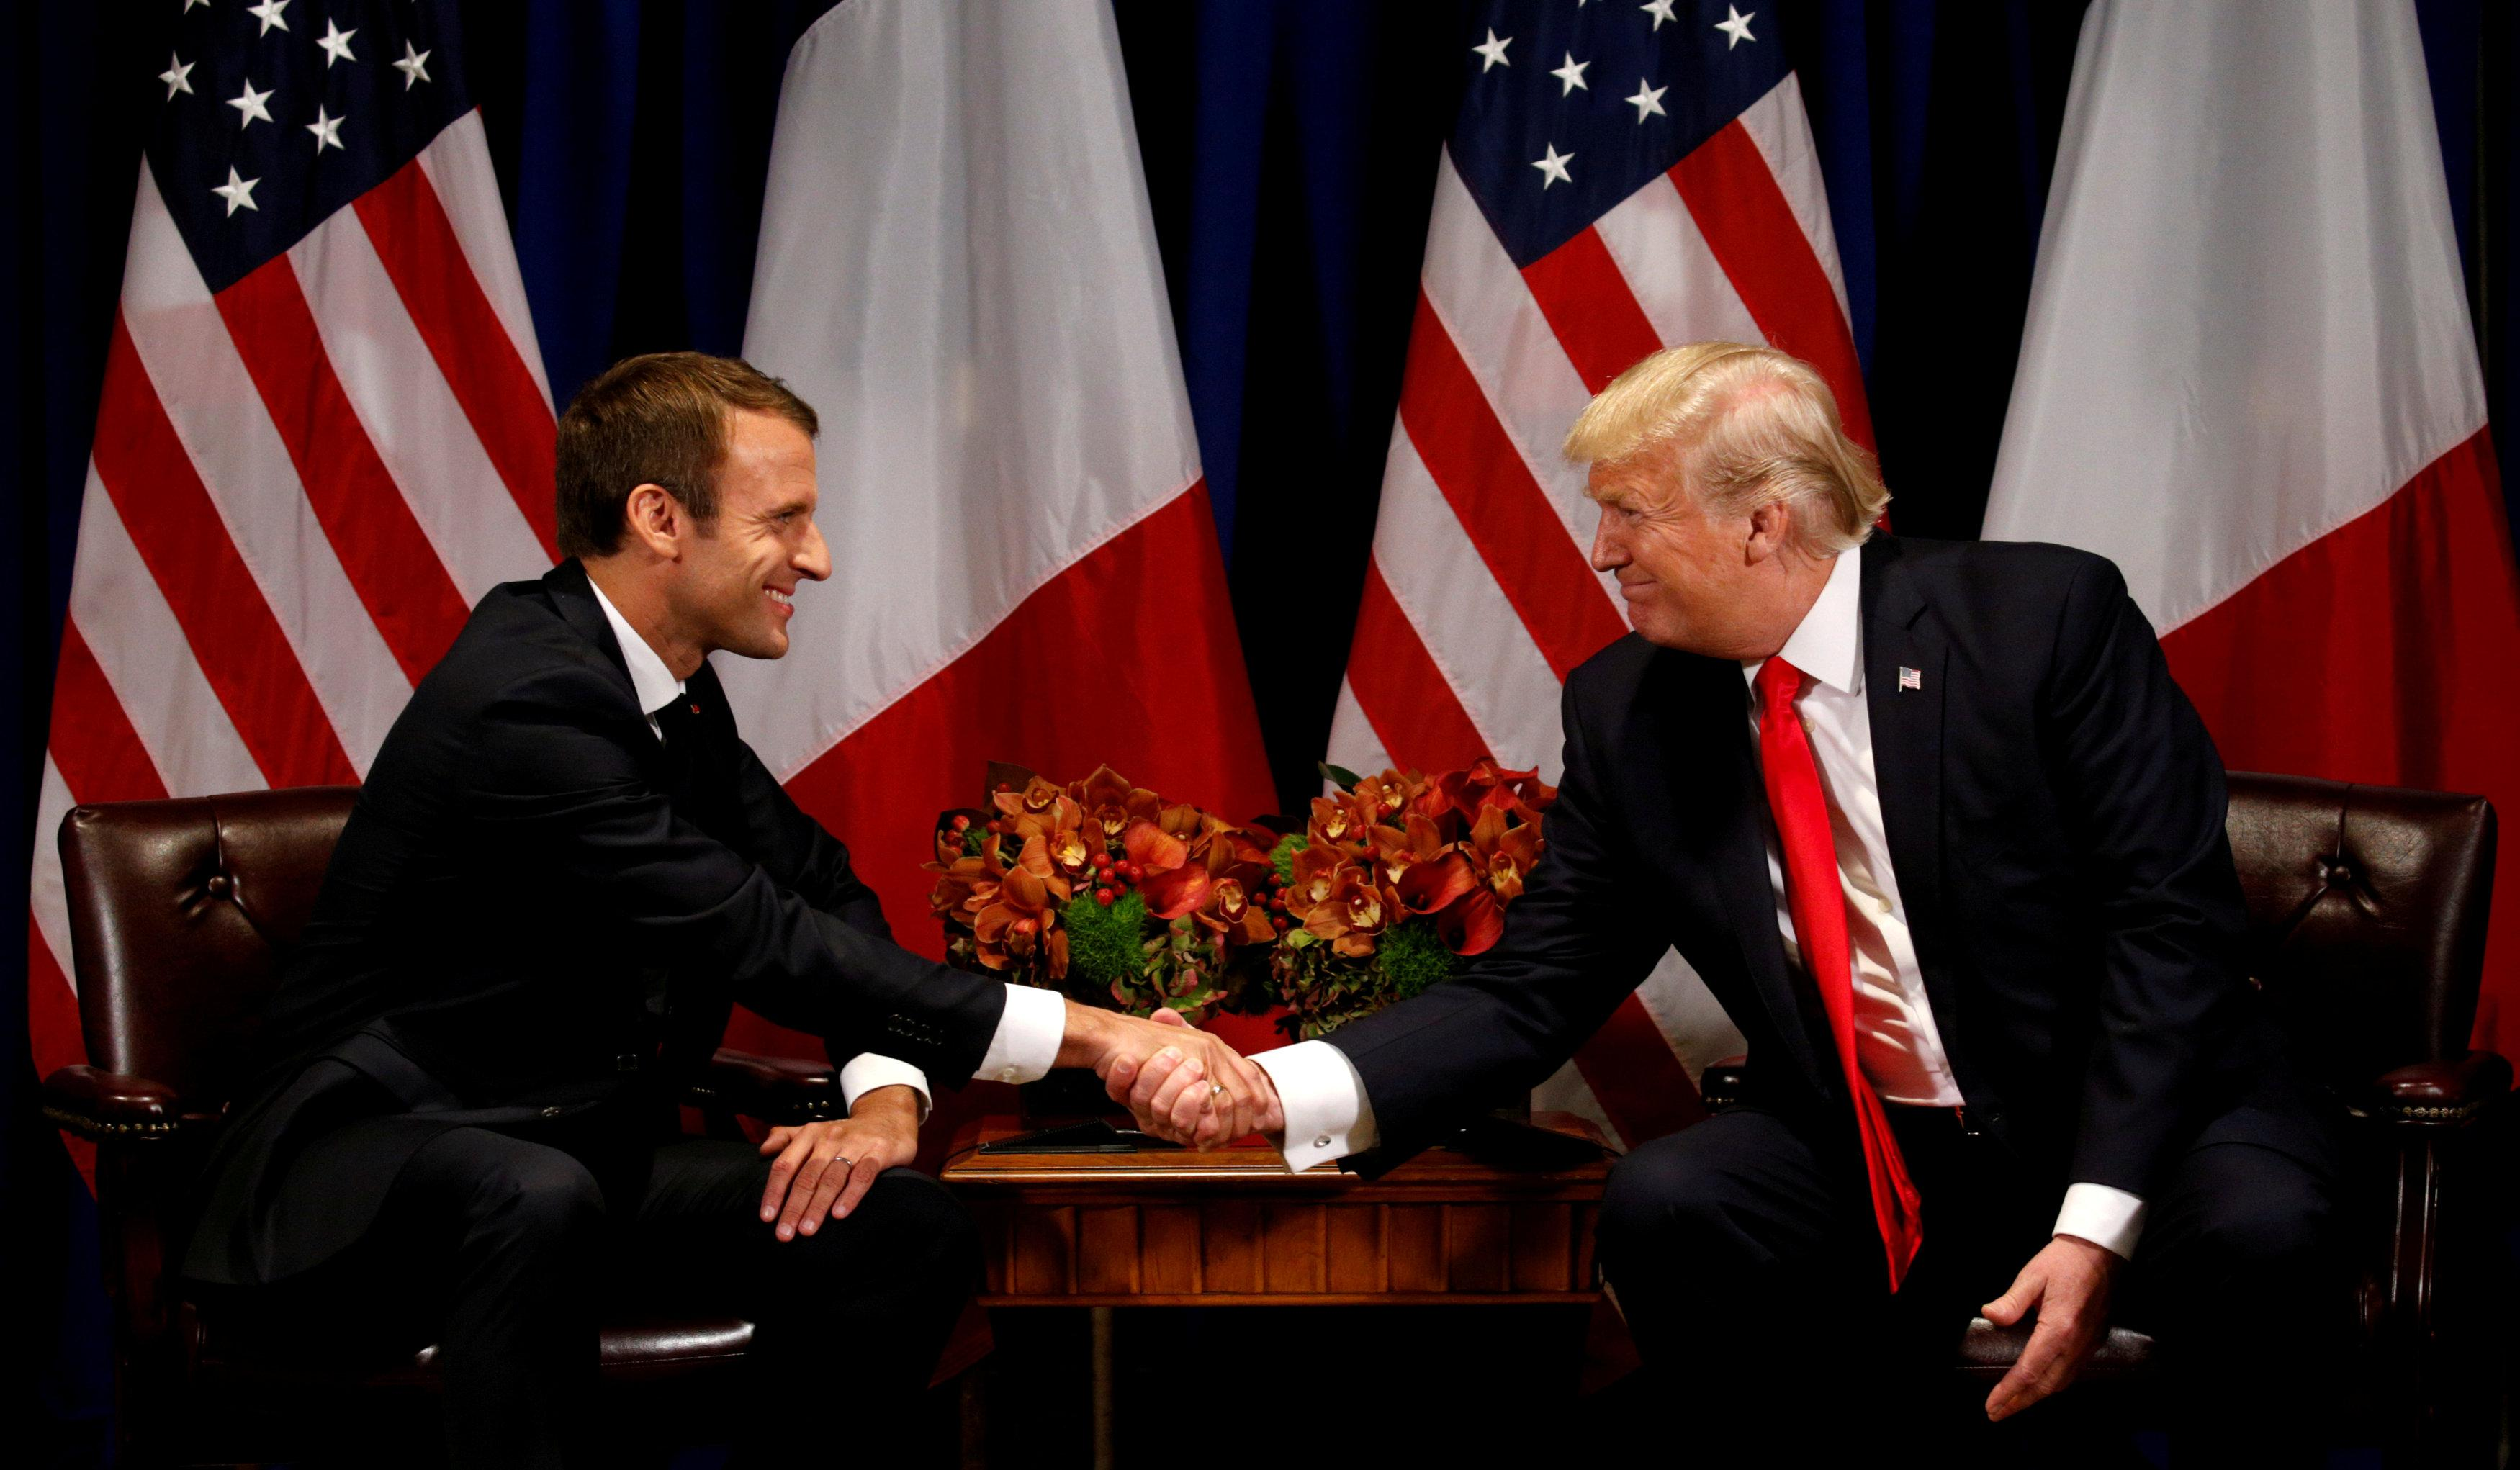 U.S. President Donald Trump meets French President Emmanuel Macron in New York, U.S., September 18, 2017. Kevin Lamarque